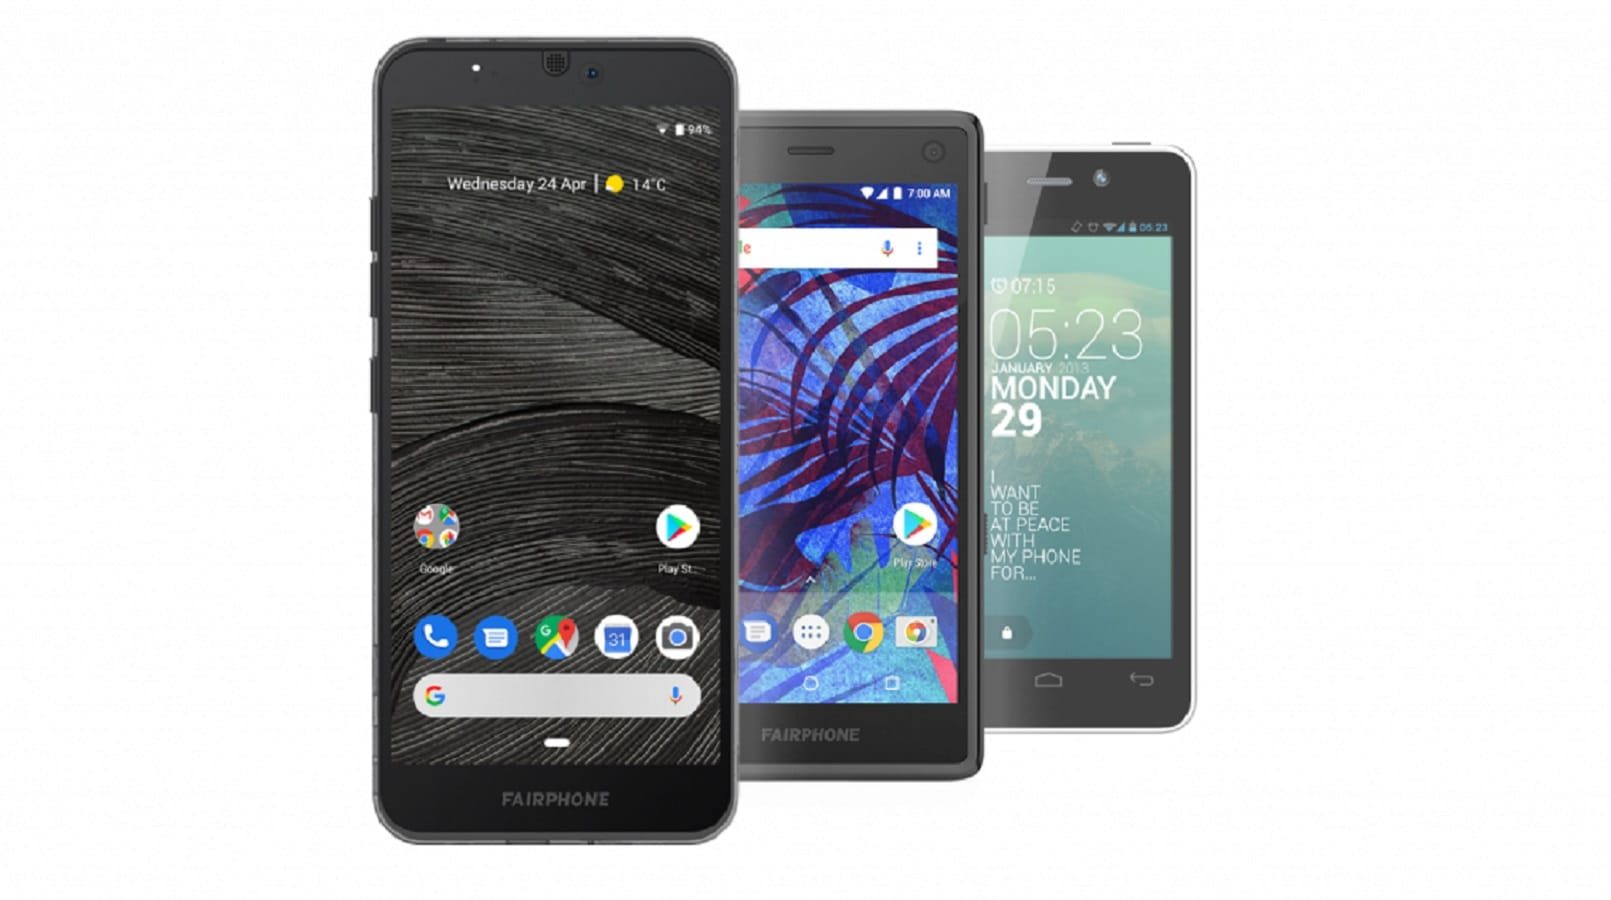 fairphone 3 smartphone